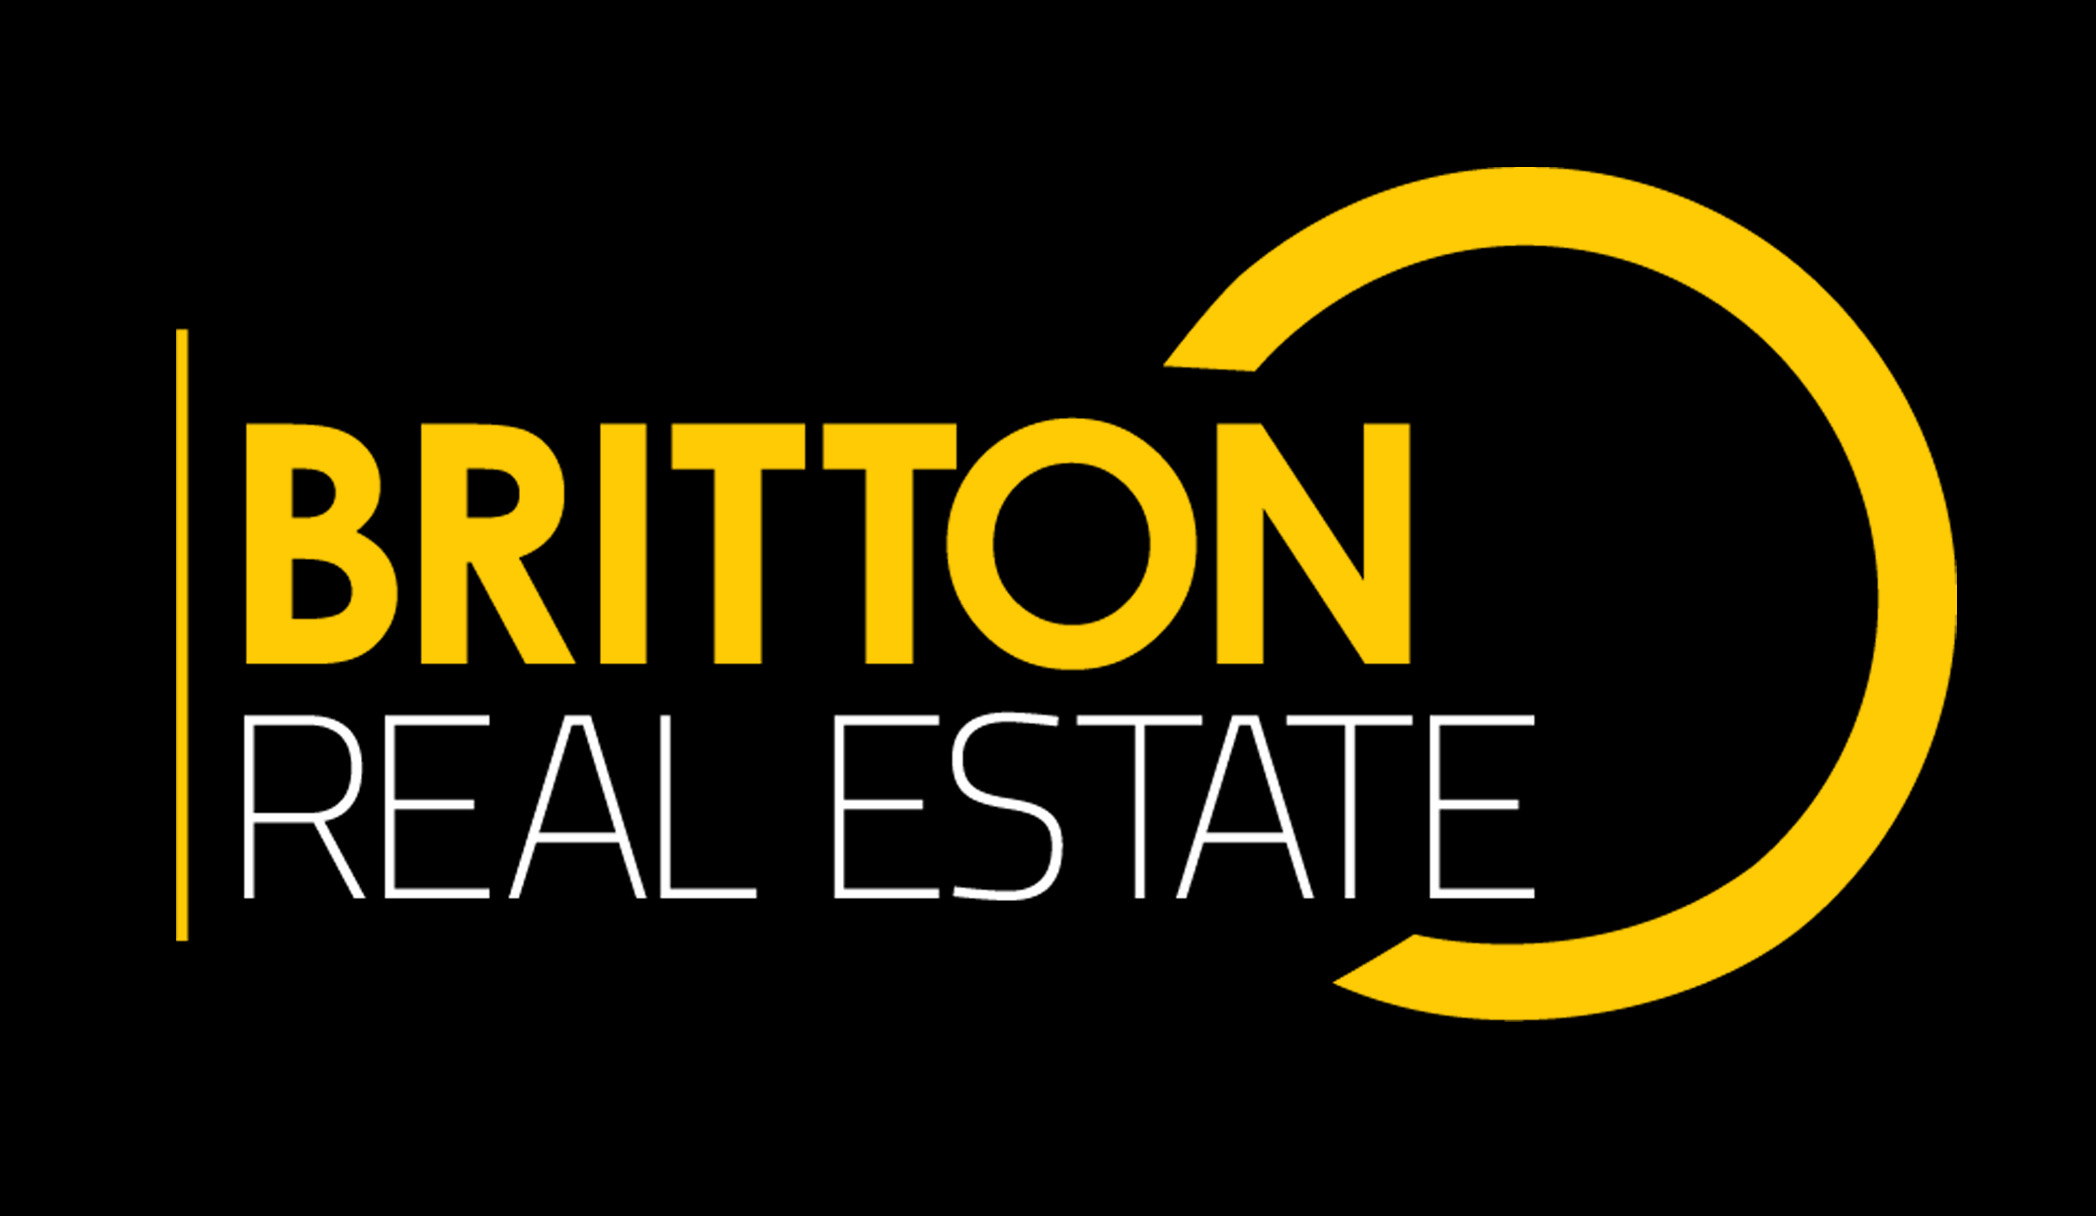 Britton Real Estate, Alexandria, 2015